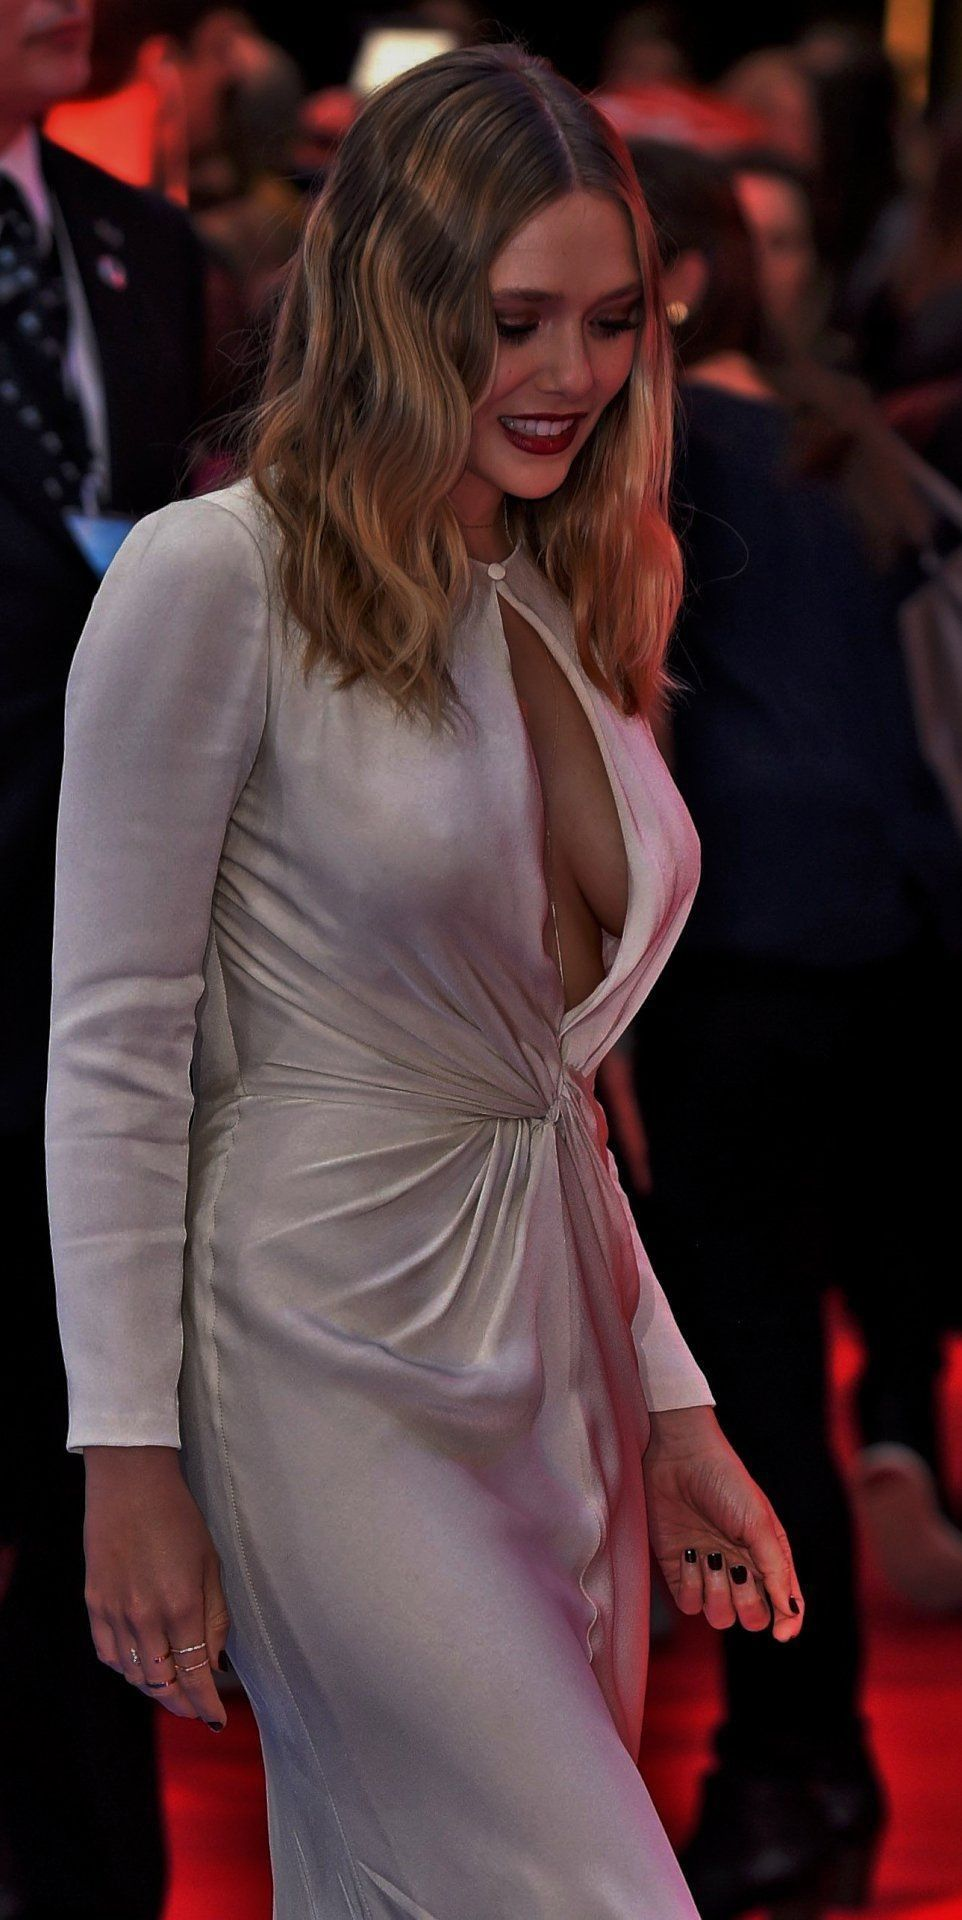 ELizabeth Olsen sexy side boobs